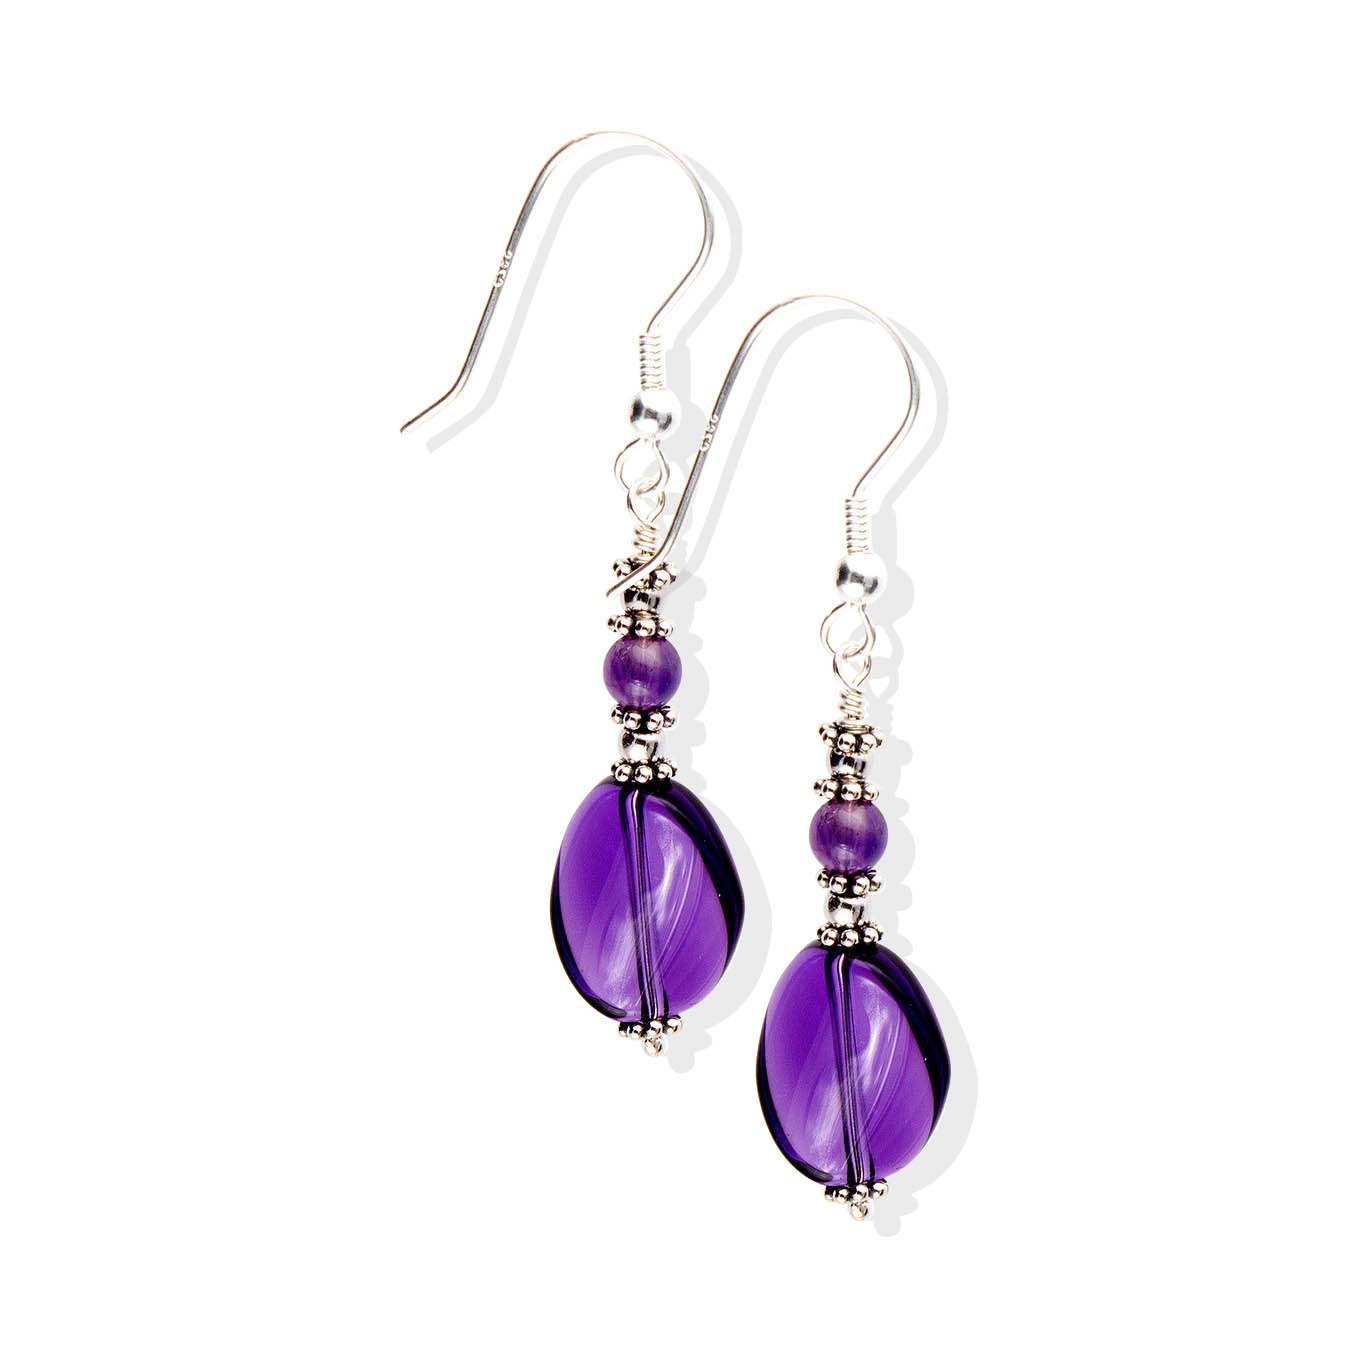 Handcrafted february birthstone bead jewelry made of twisted amethyst